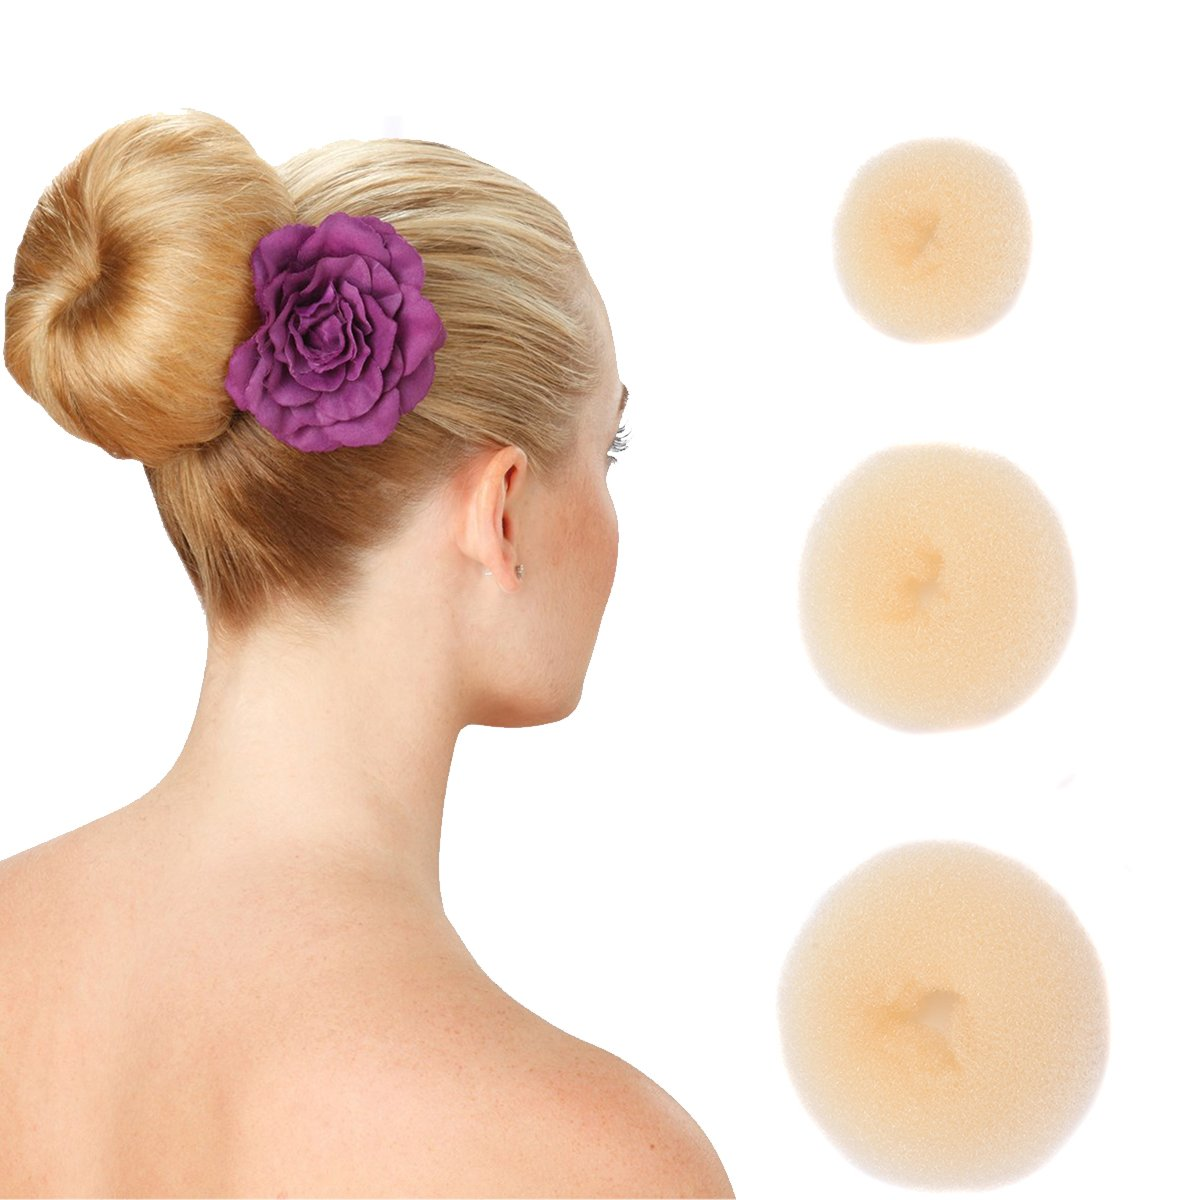 Hair Dount Bun Maker Ring Style Dounghnut Shaper Chignon Former for Creating Updo Pack of 3 Pieces(1Large+1Middle+1Samll) Beige BHF